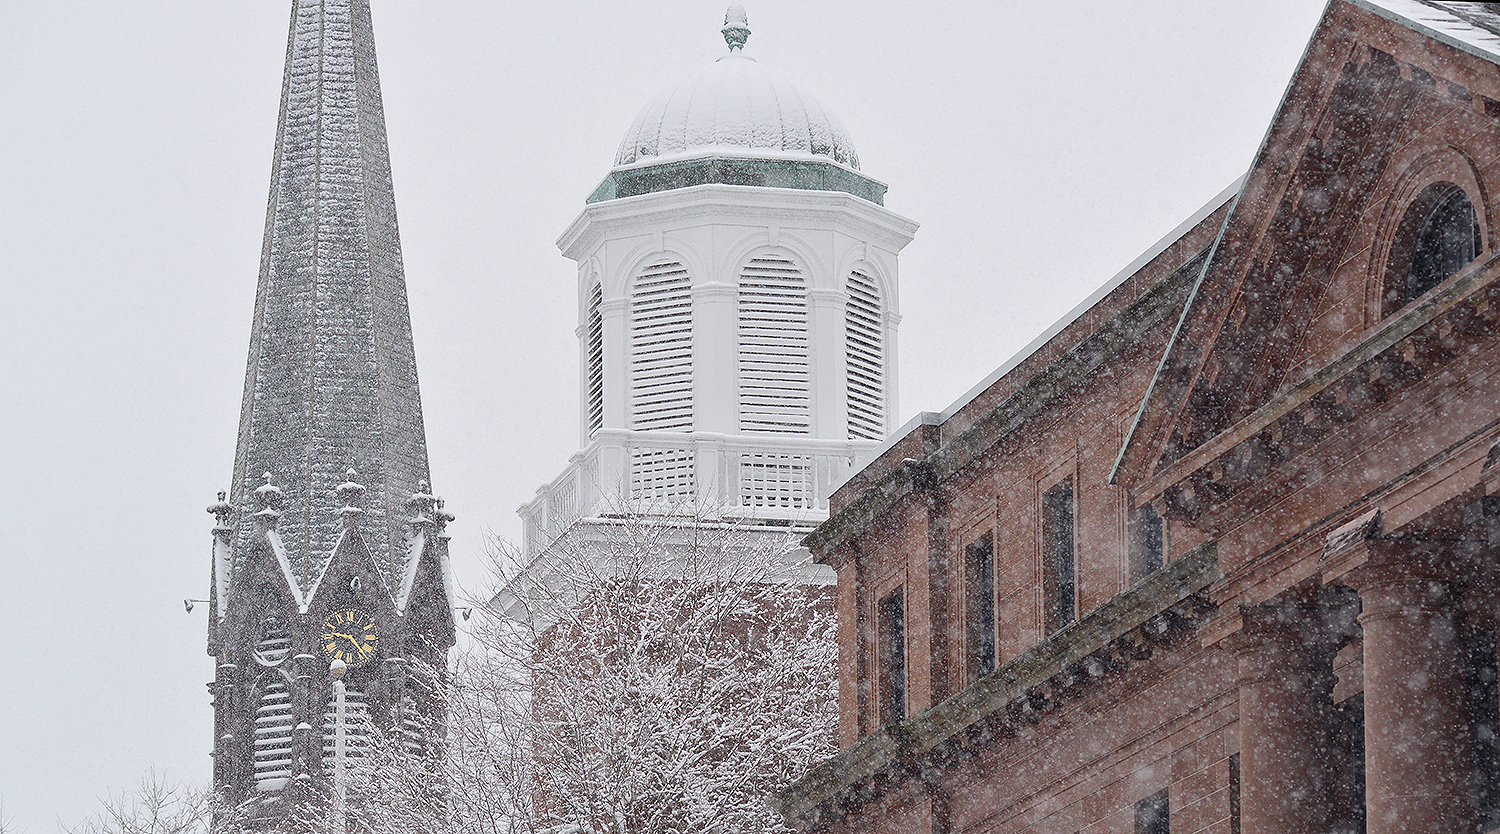 Snowy rooftops. From left, Memorial Chapel, South College, North College.